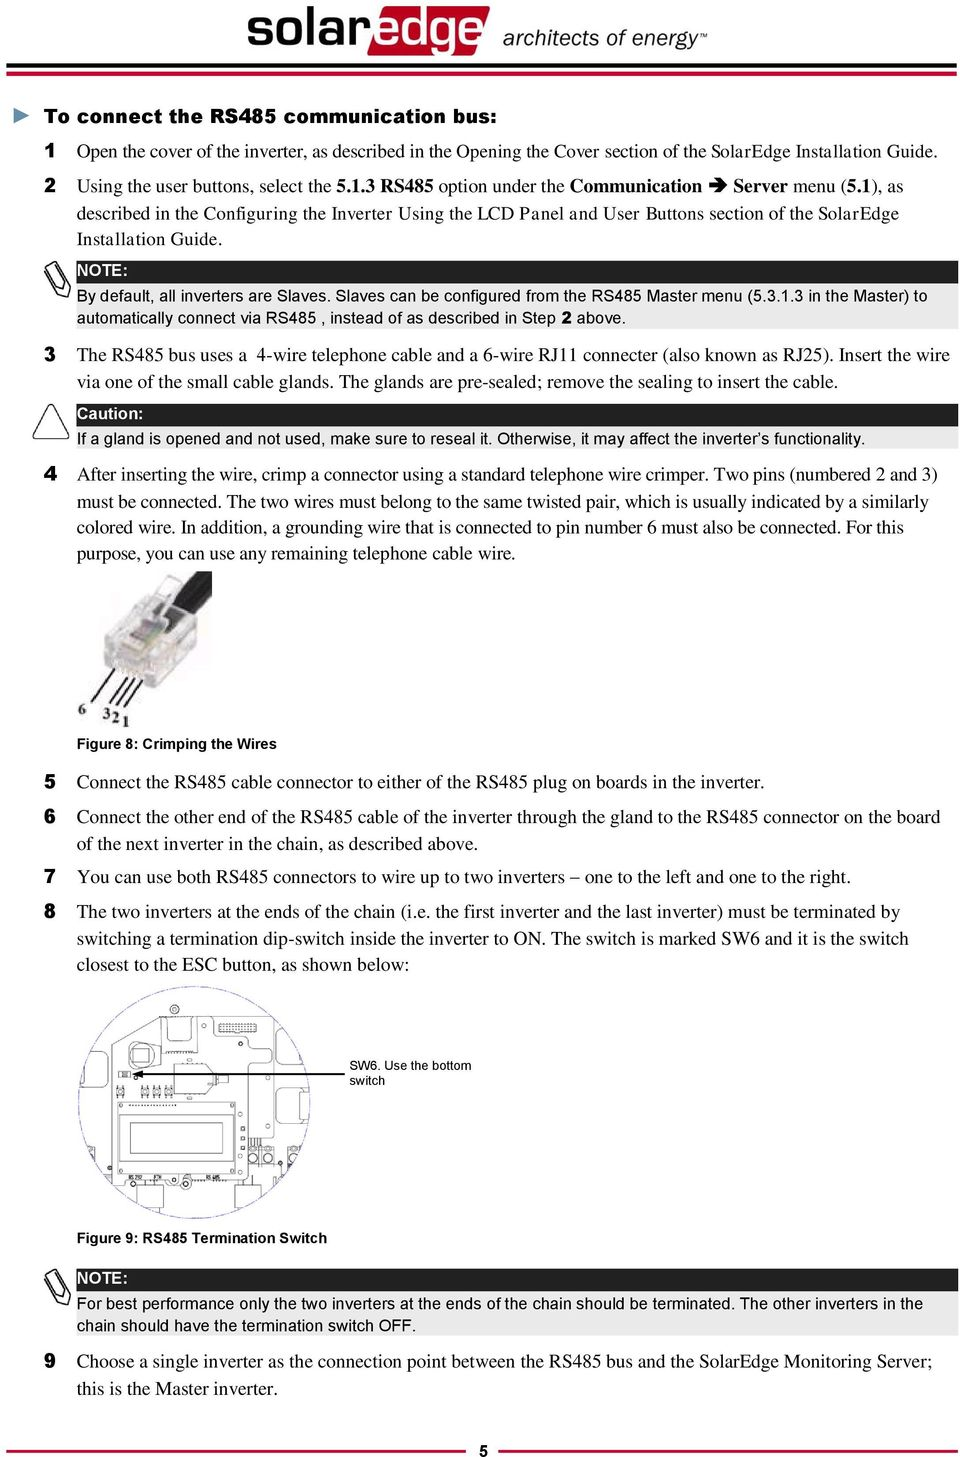 Communication Setup Application Note Pdf 4 Wire Rs485 Wiring 3 The Bus Uses A Telephone Cable And 6